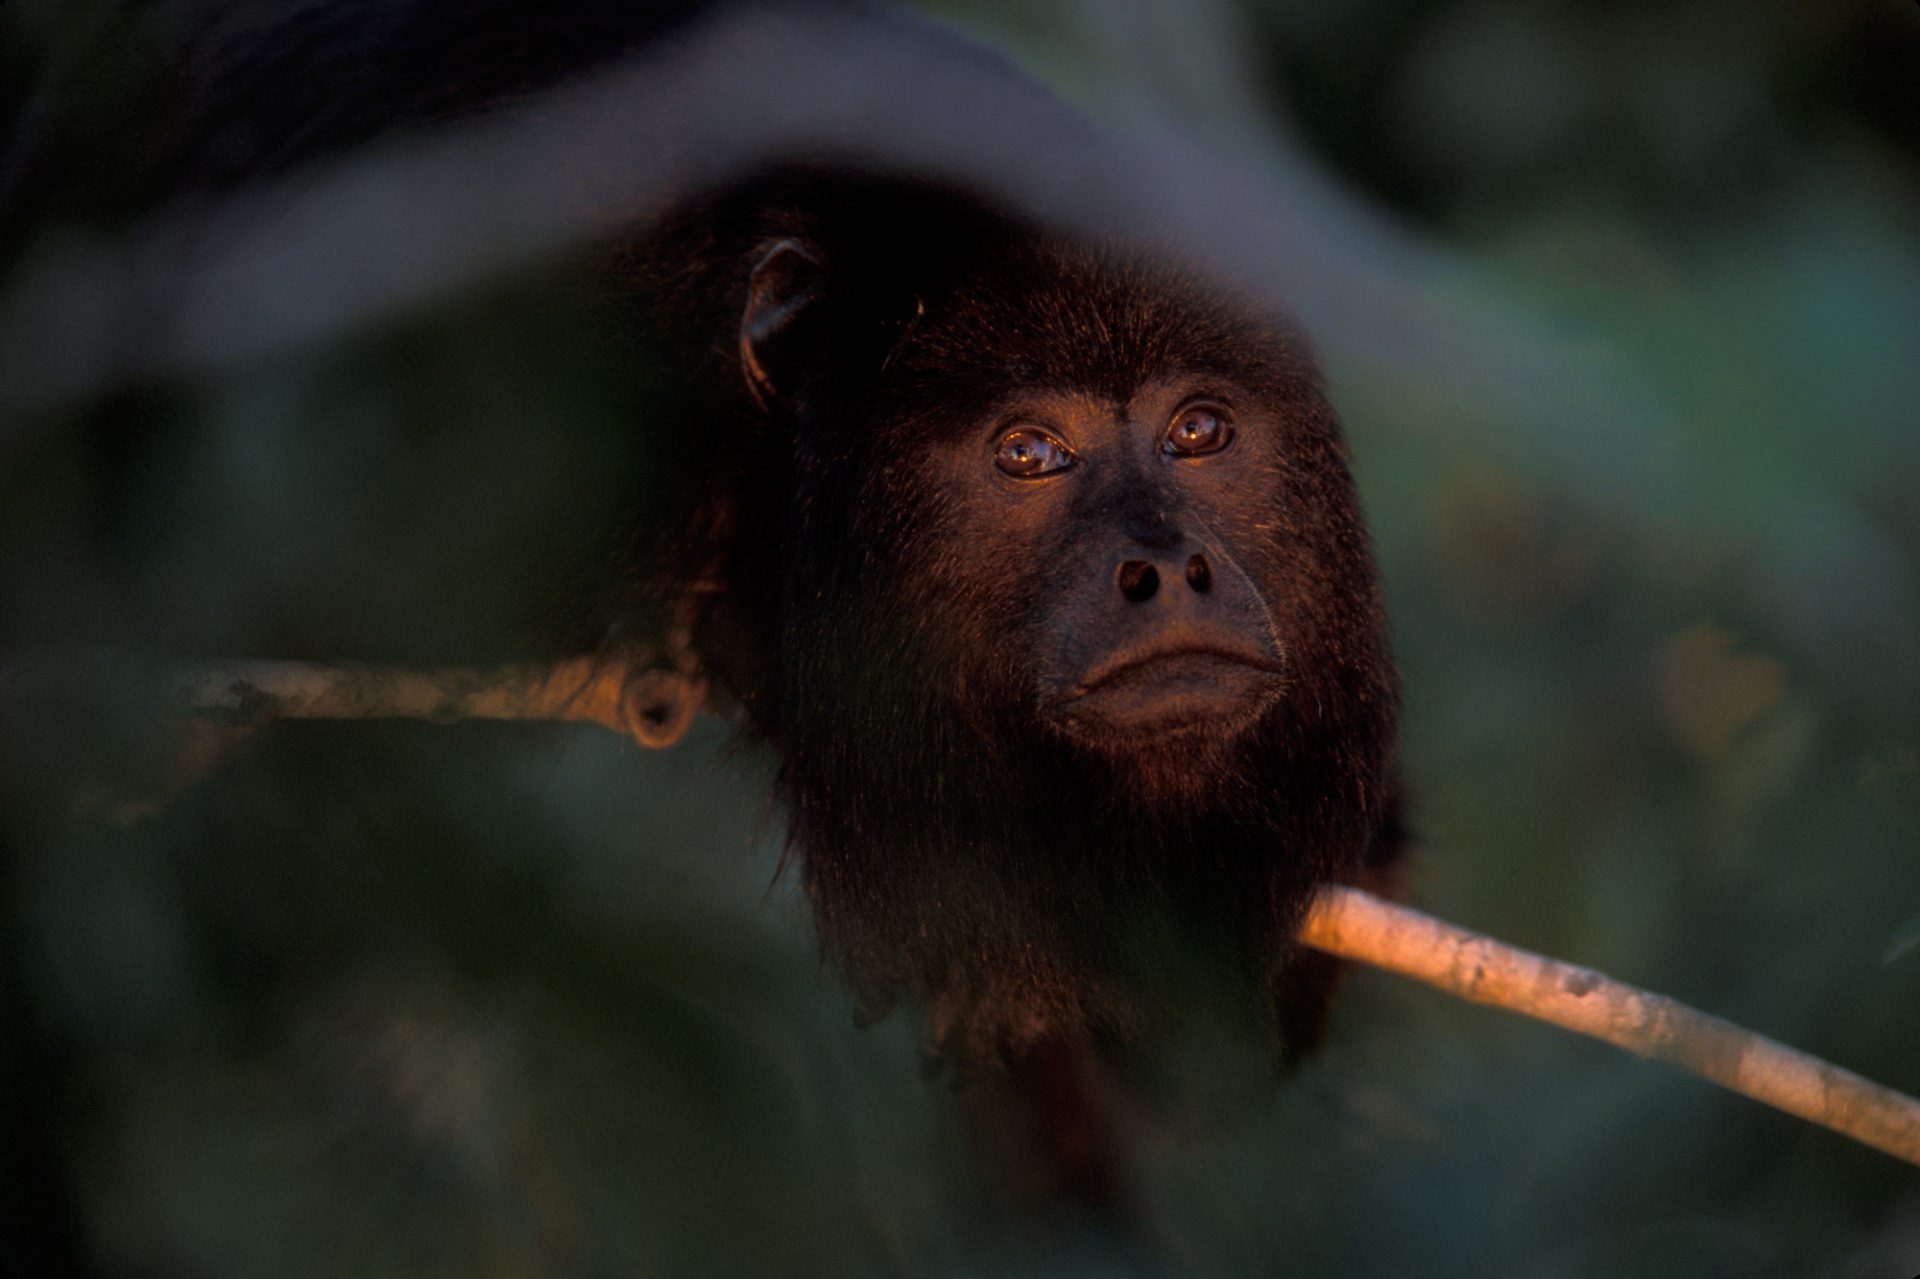 A close-up of a male black howler monkey (Alouatta caraya) in the Pantanal, Brazil.